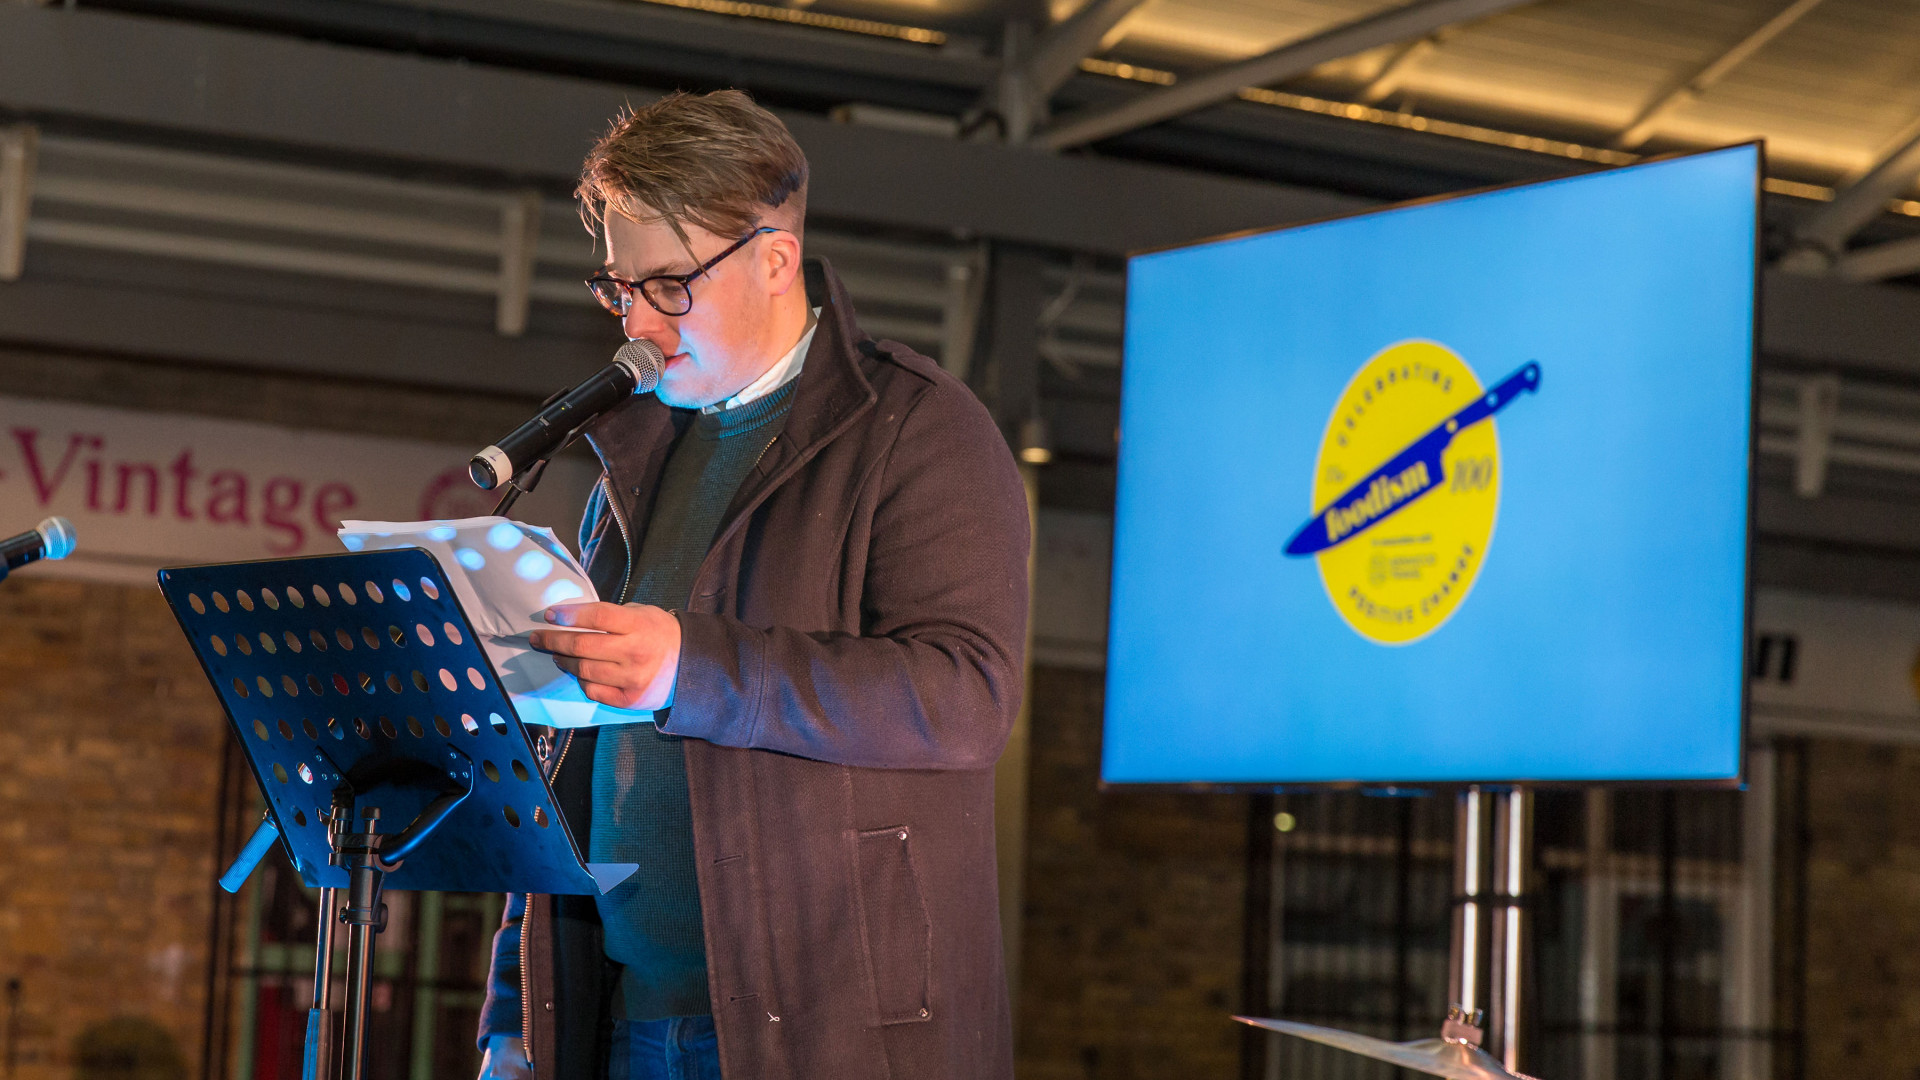 The Foodism 100 awards night 2019: Mike Gibson presenting the awards ceremony